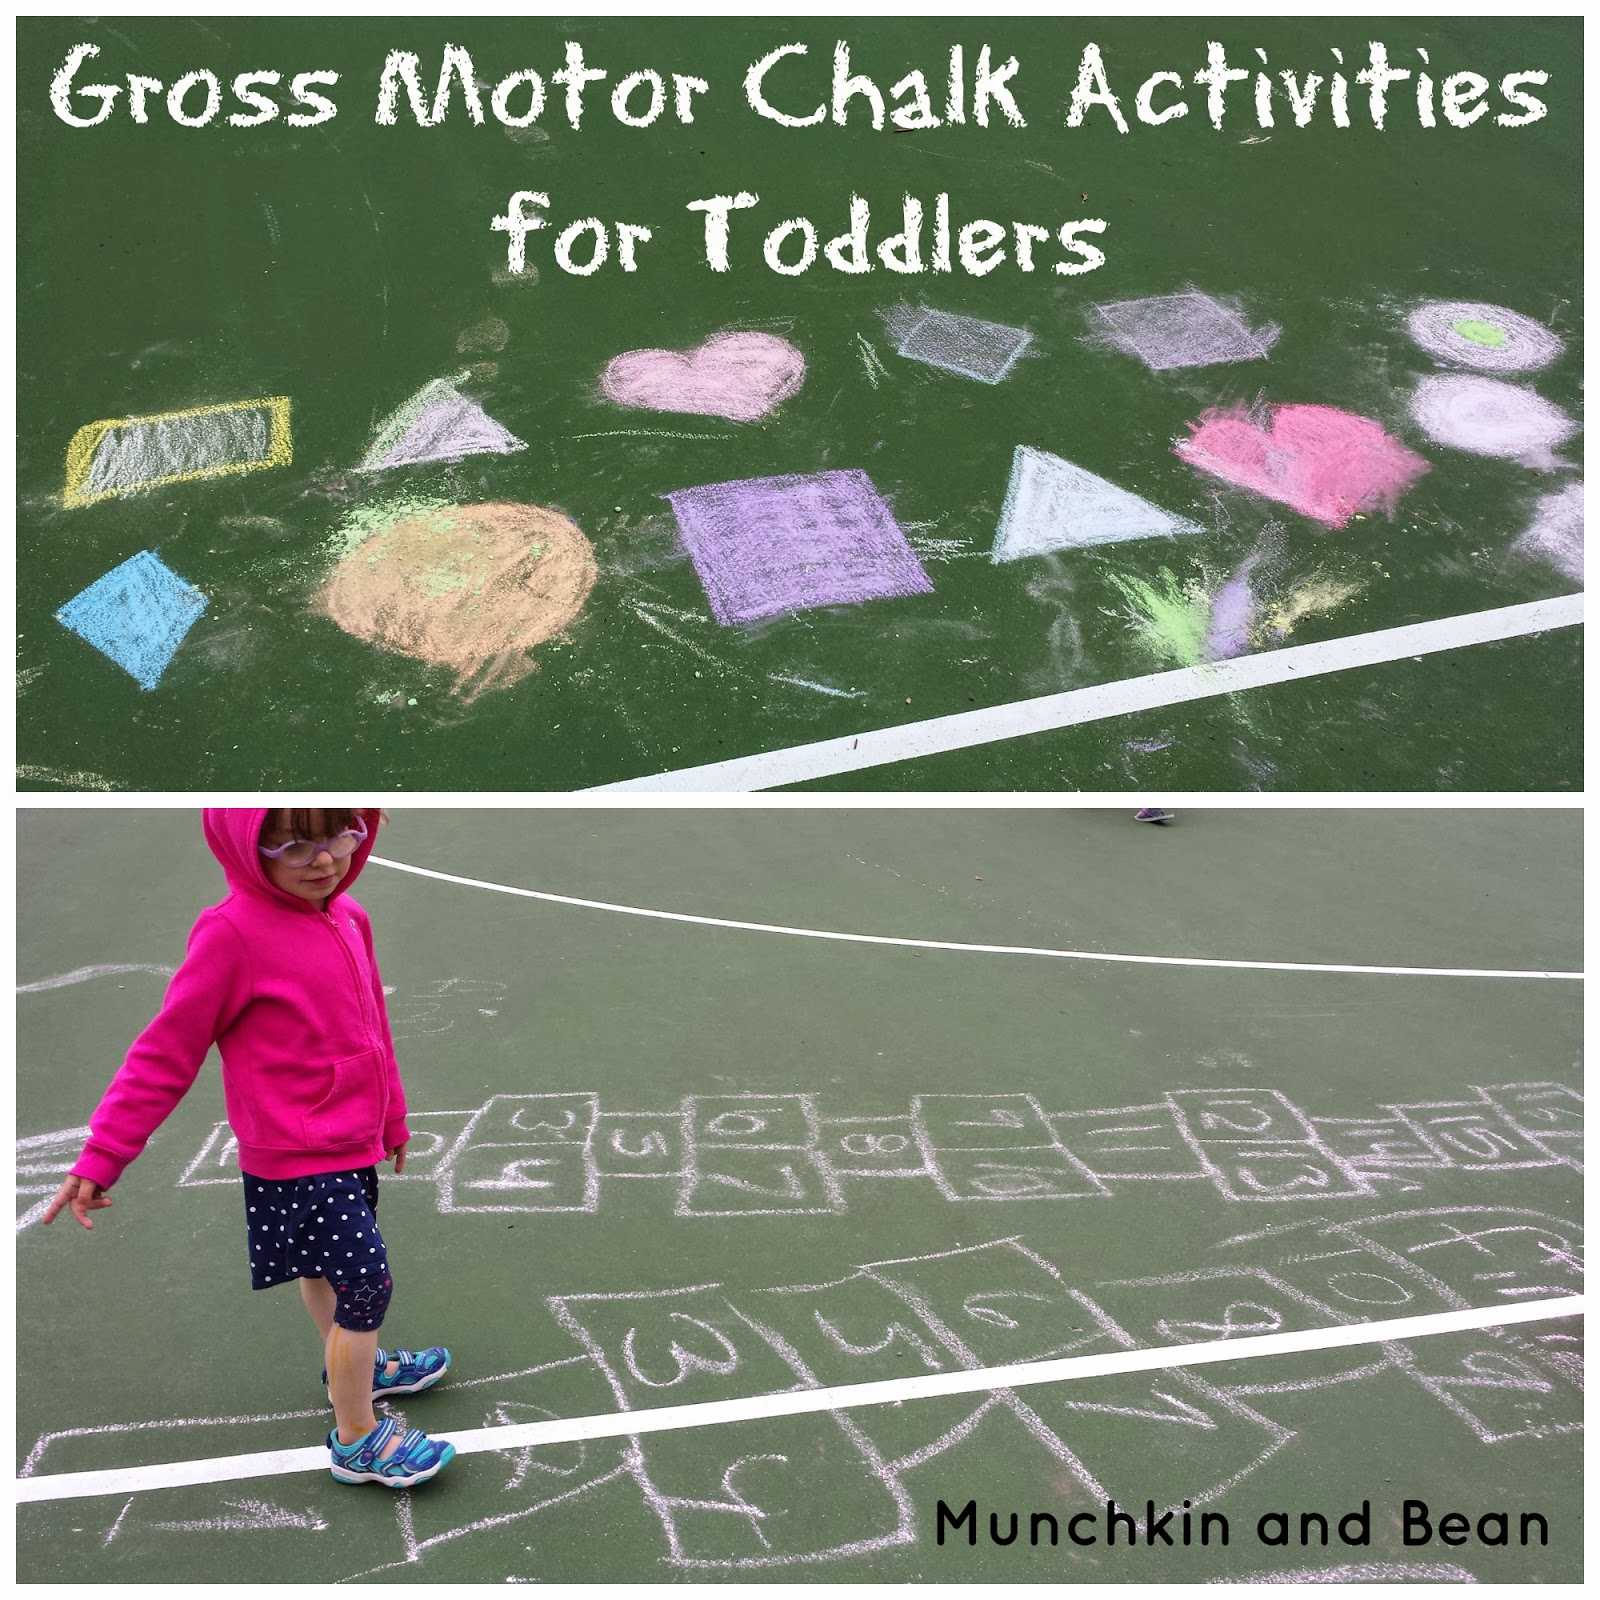 Munchkin and bean gross motor chalk activities for toddlers for Gross motor activities for preschoolers lesson plans